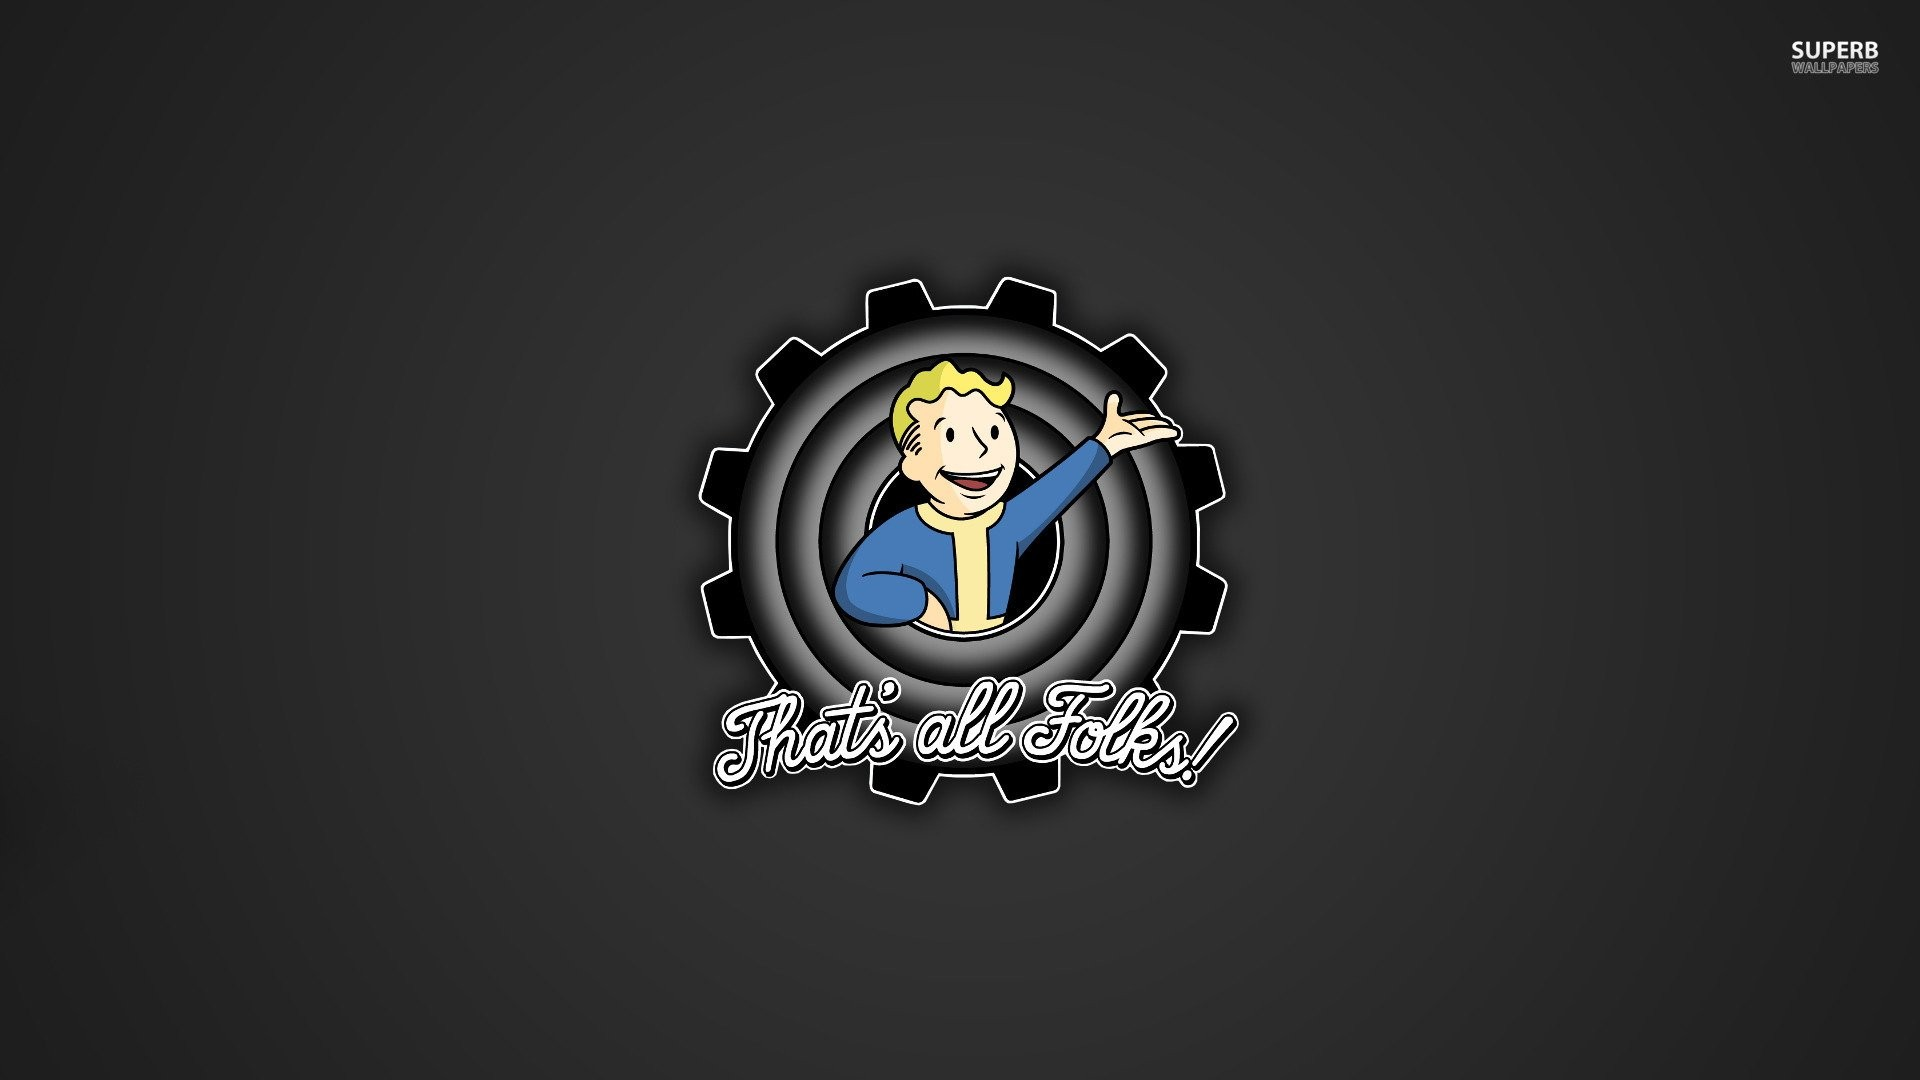 Fall Out Boy Wallpaper Logo Fallout Vault Boy Wallpaper 183 ① Download Free Amazing High